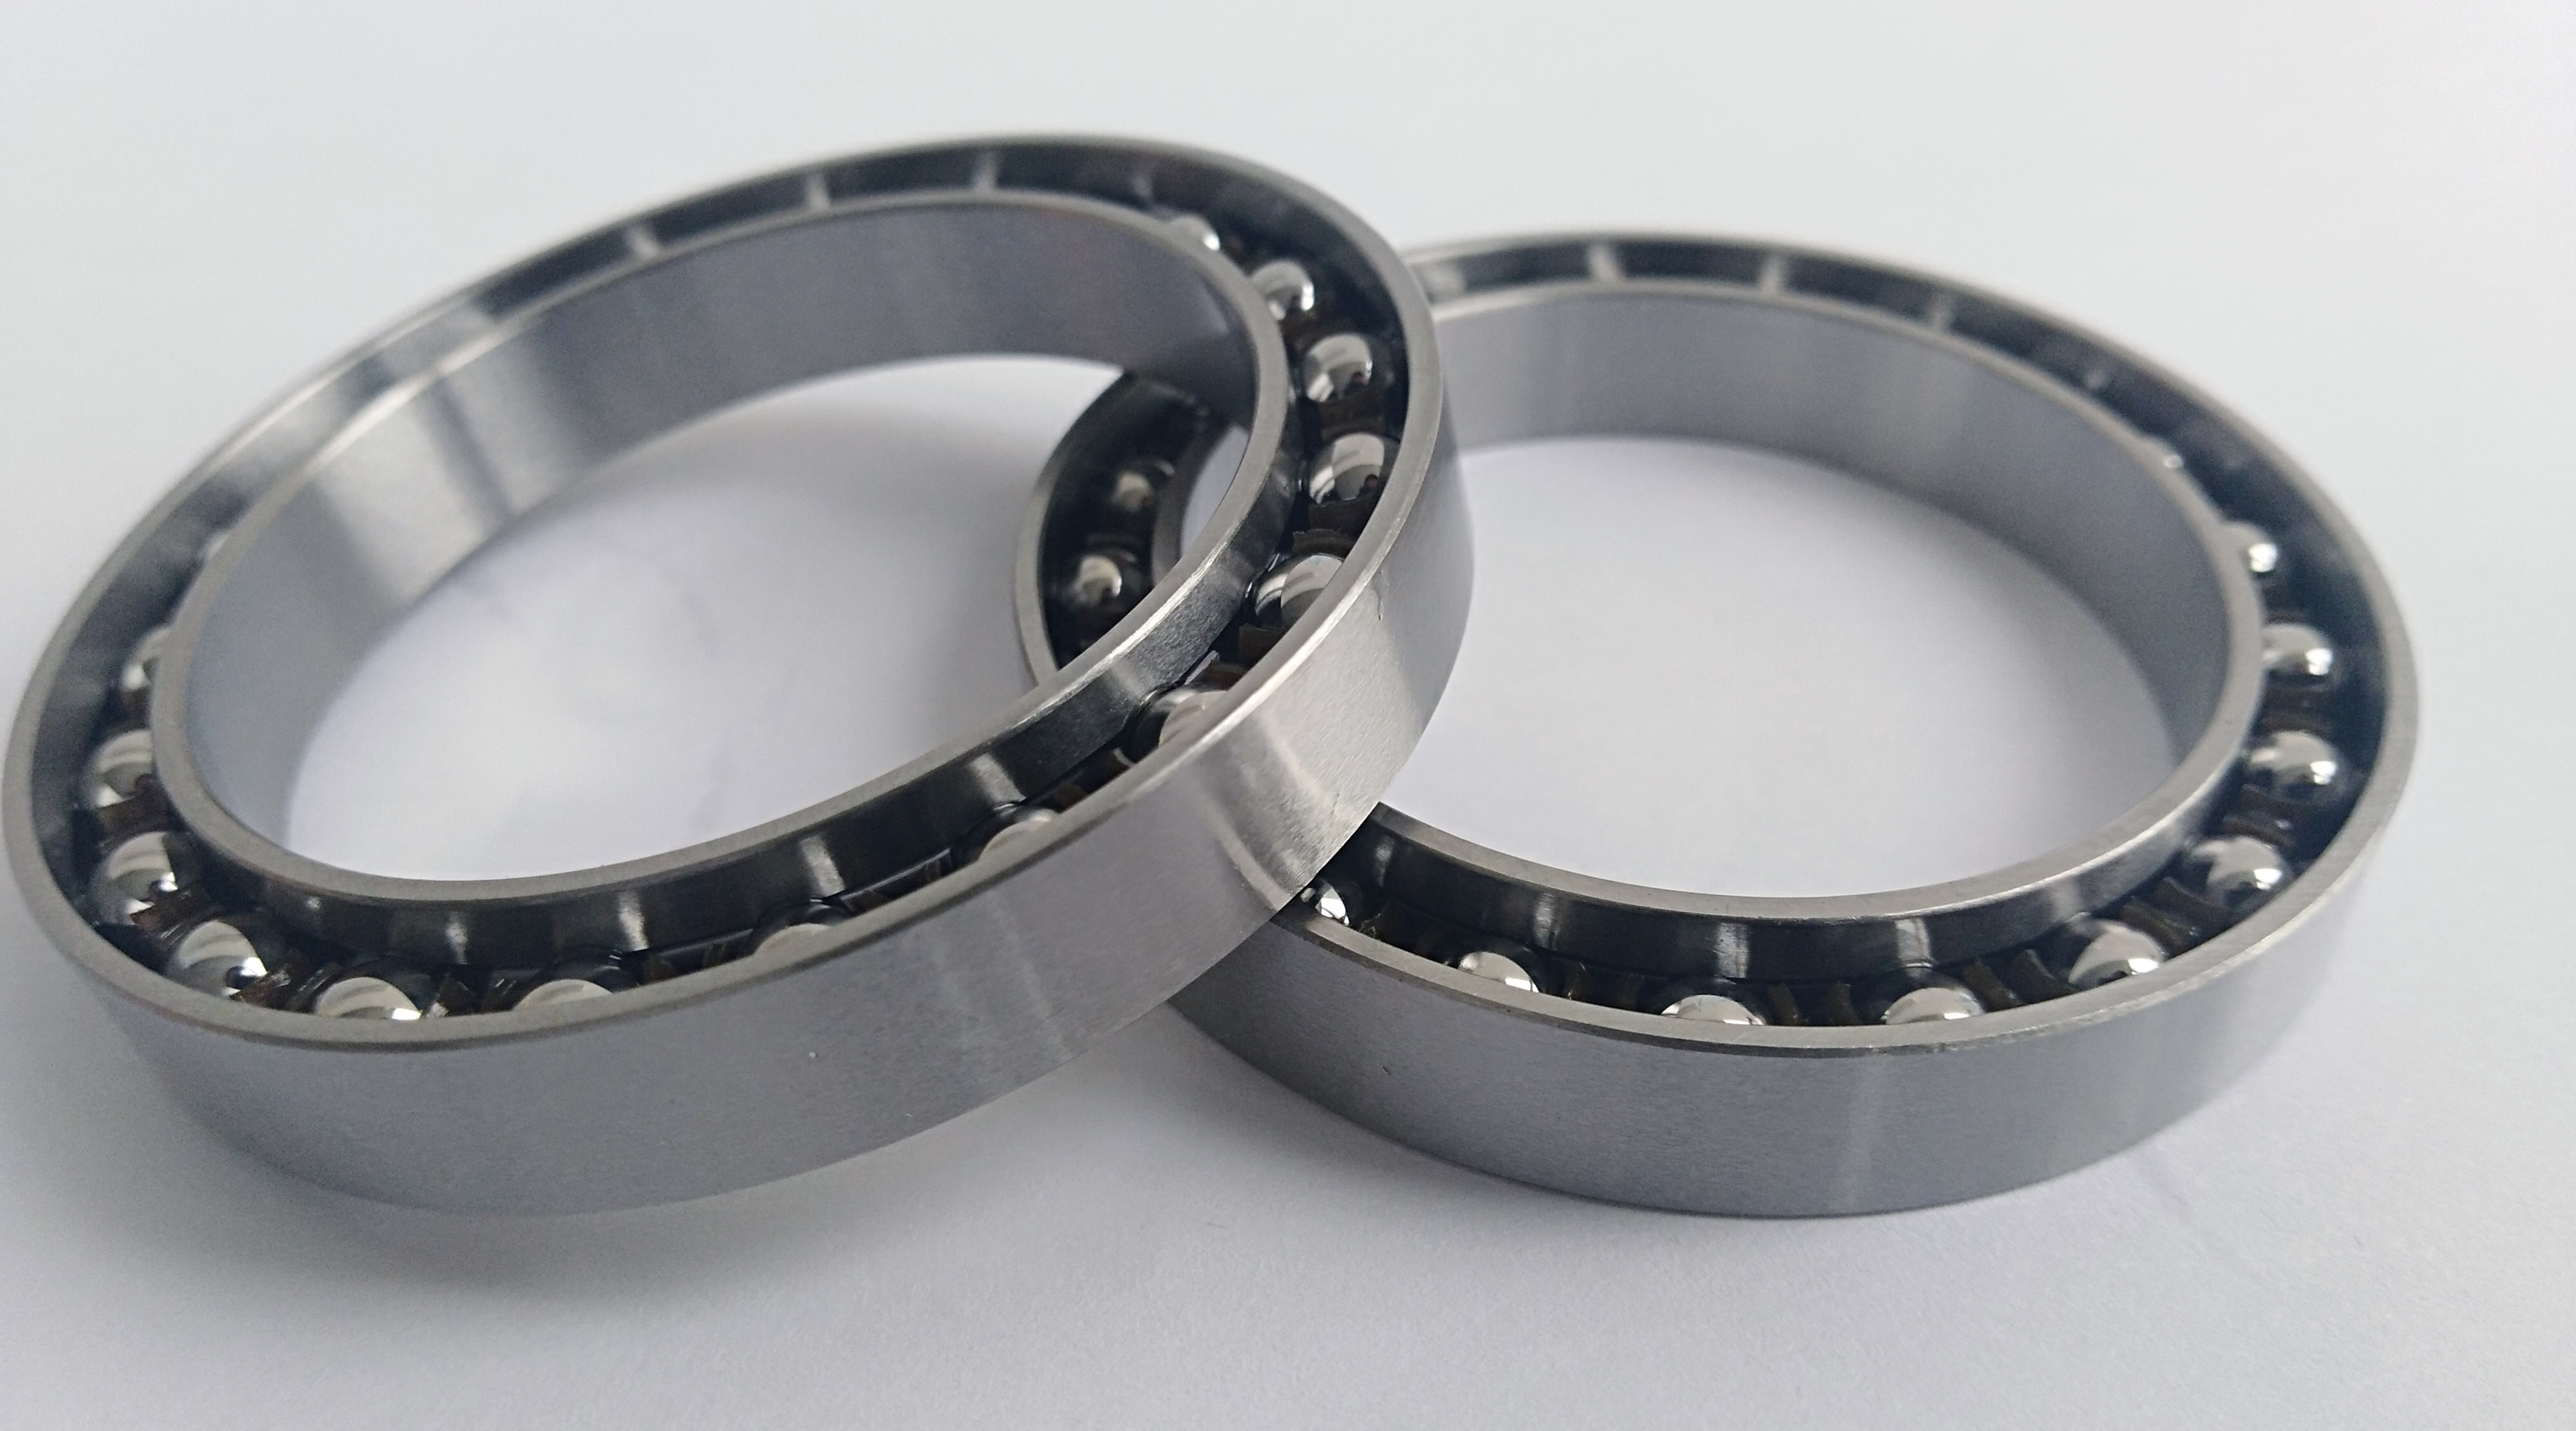 3e809kat2 flexible robot bearing